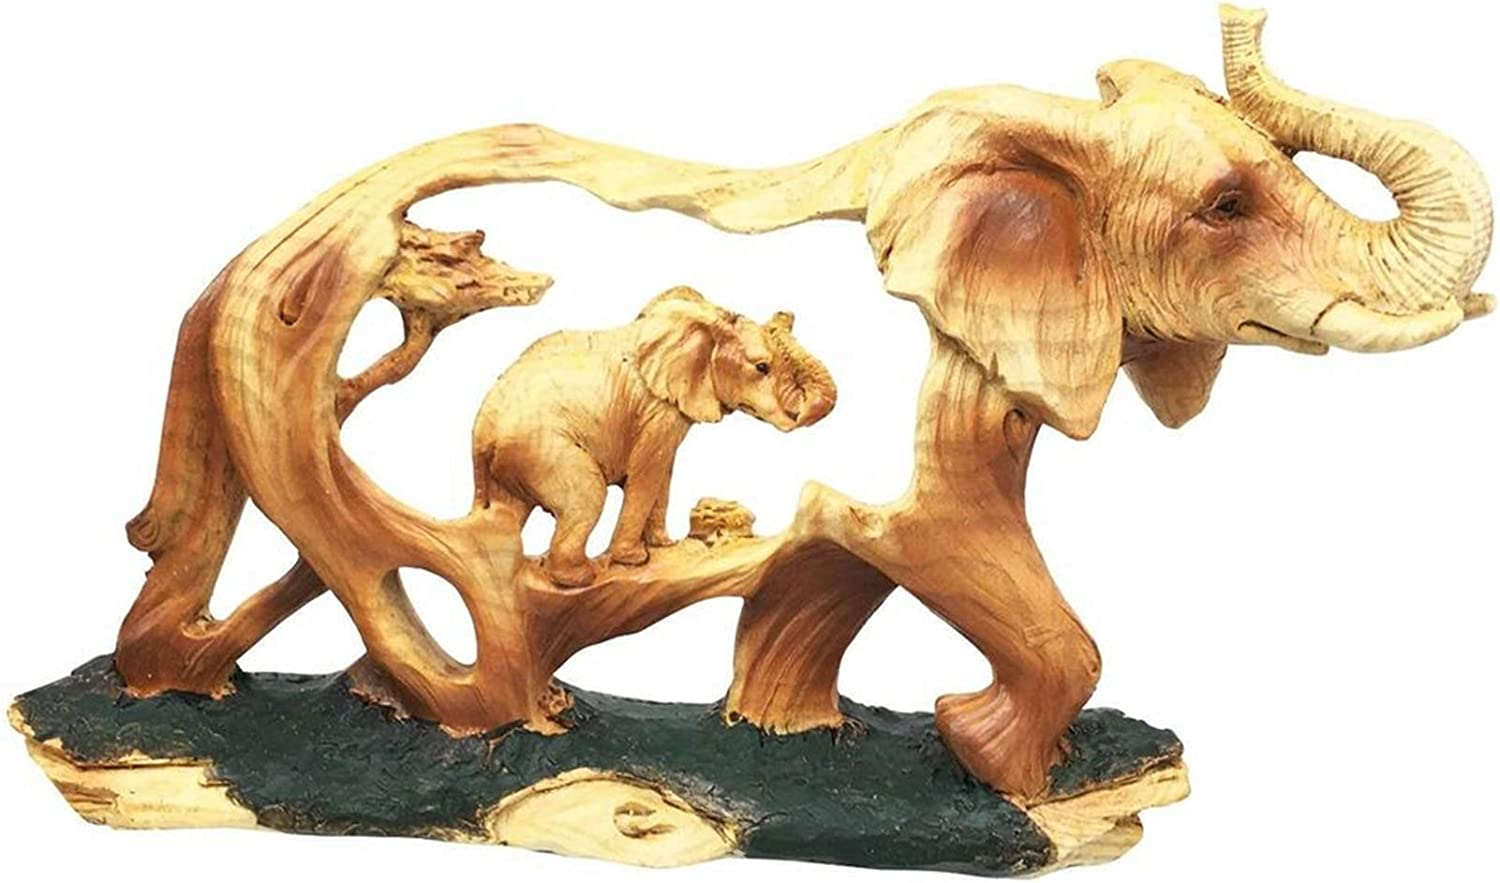 Rustic Faux Wood Noble Majestic African Safari Elephant With Calf Figurine Resin